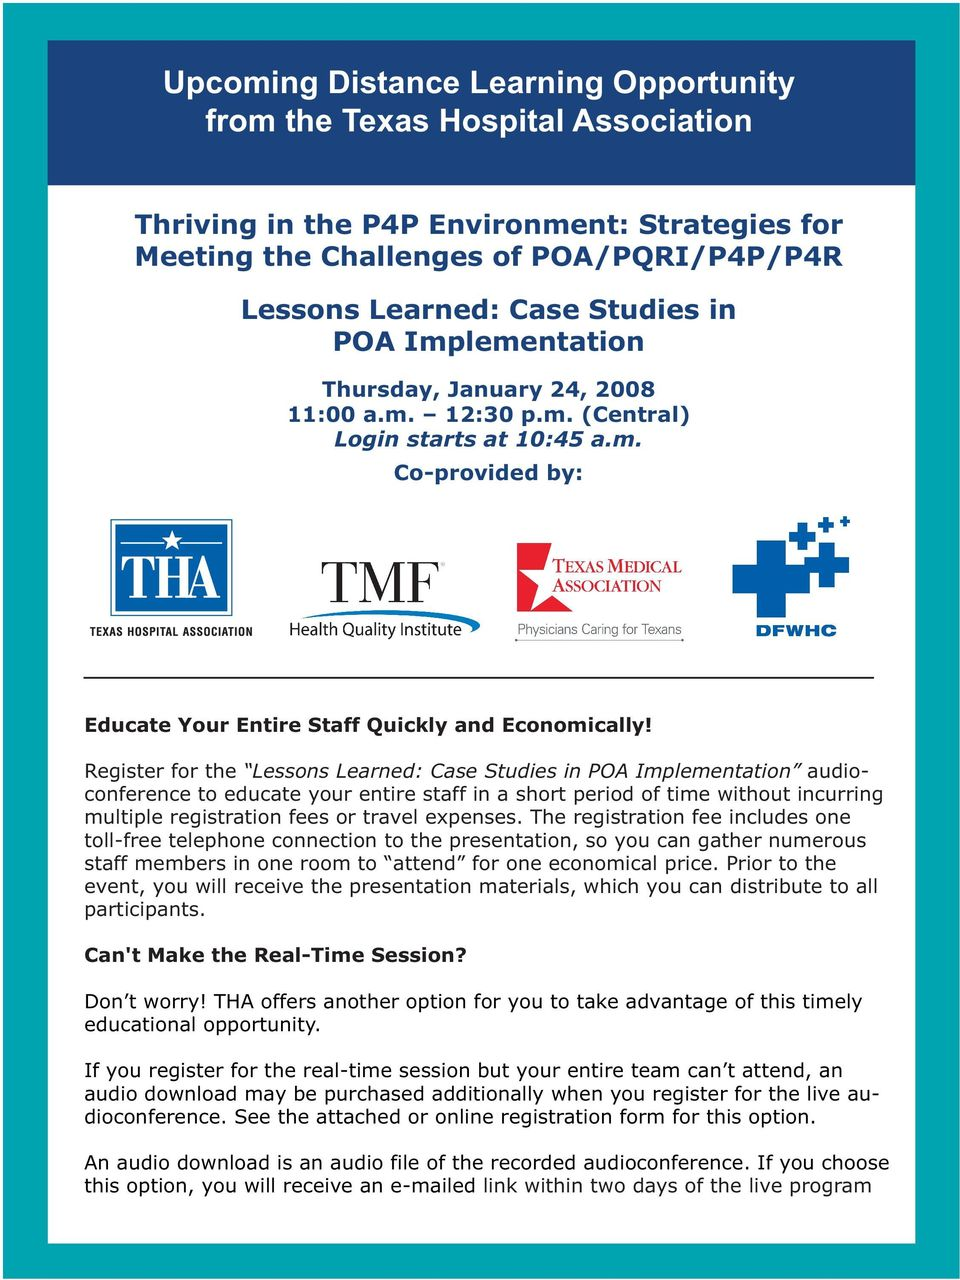 Register for the Lessons Learned: Case Studies in POA Implementation audioconference to educate your entire staff in a short period of time without incurring multiple registration fees or travel